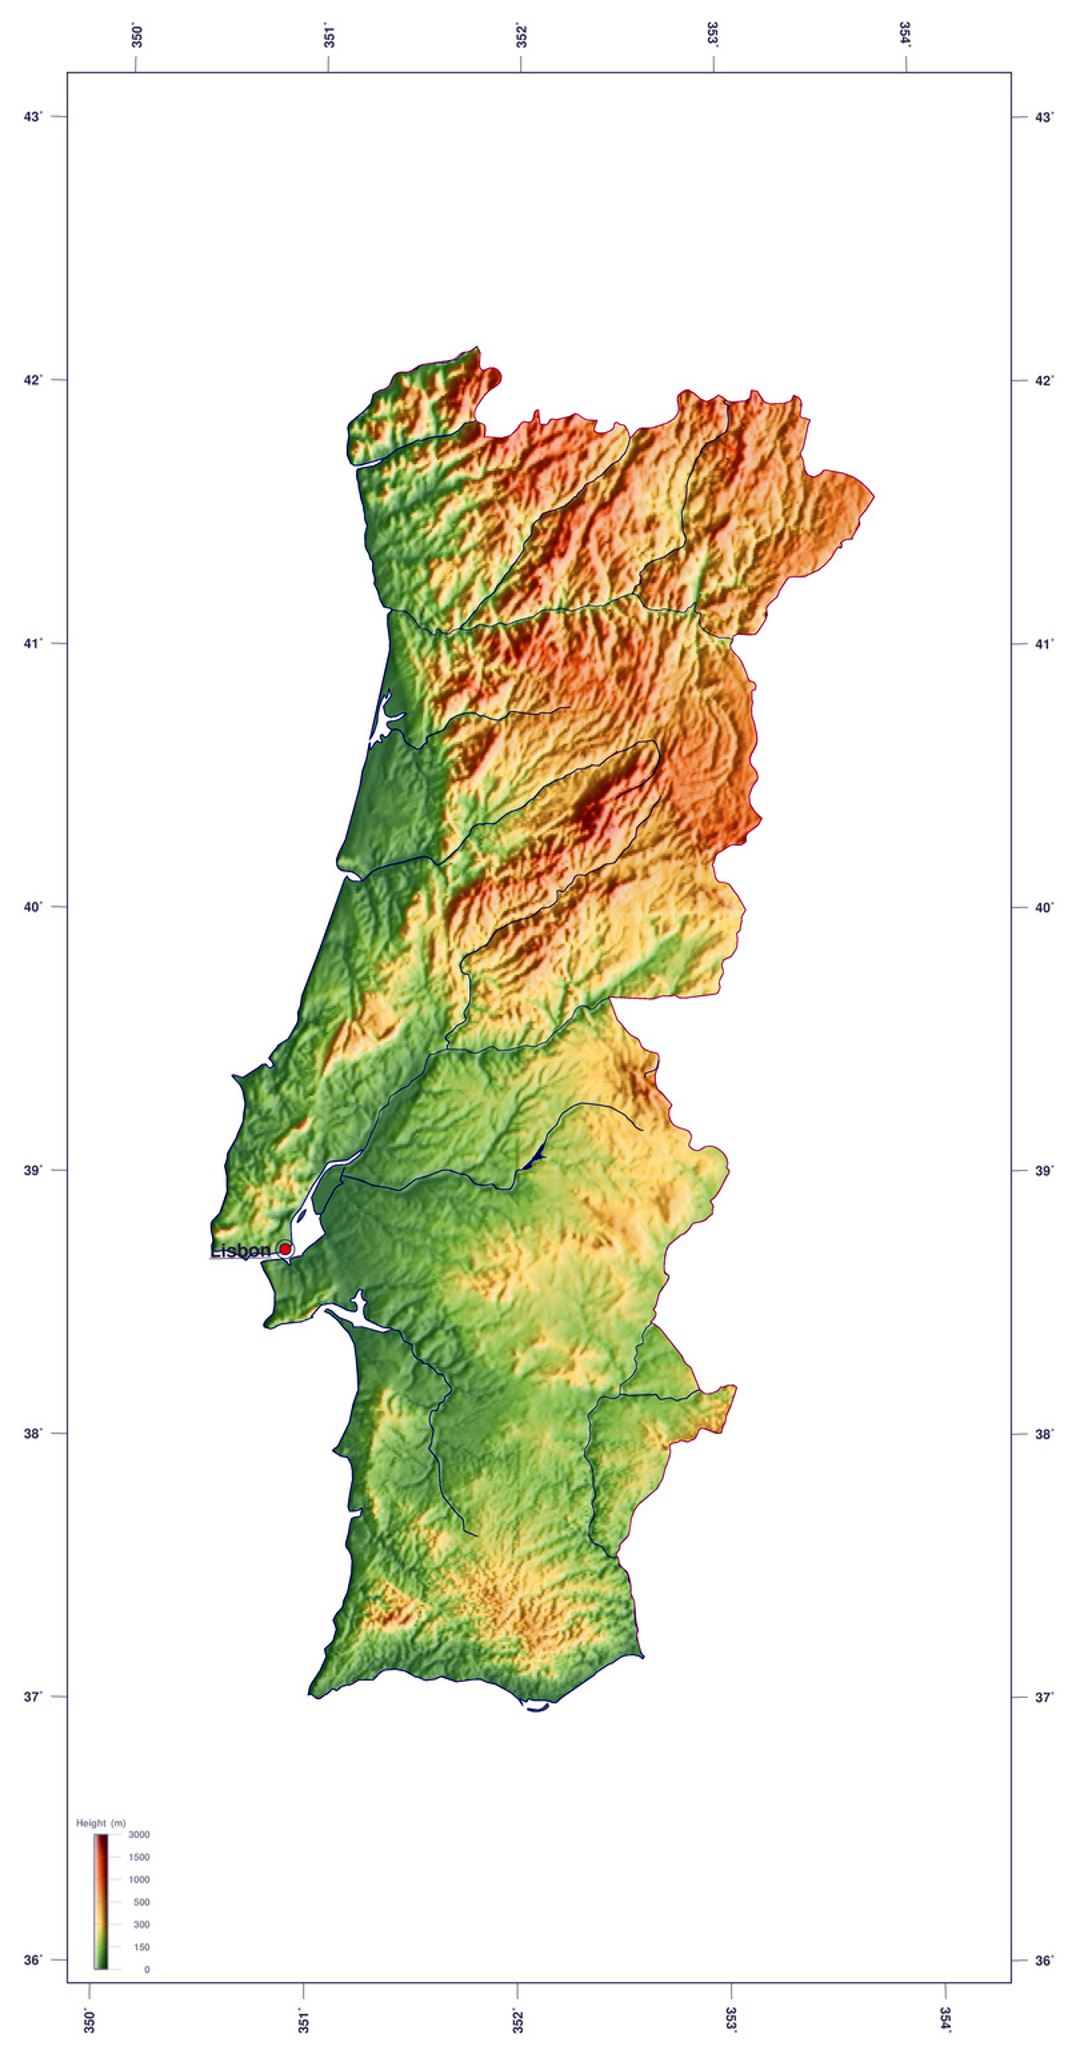 Detailed Elevation Map Of Portugal Portugal Europe Mapsland - Portugal elevation map